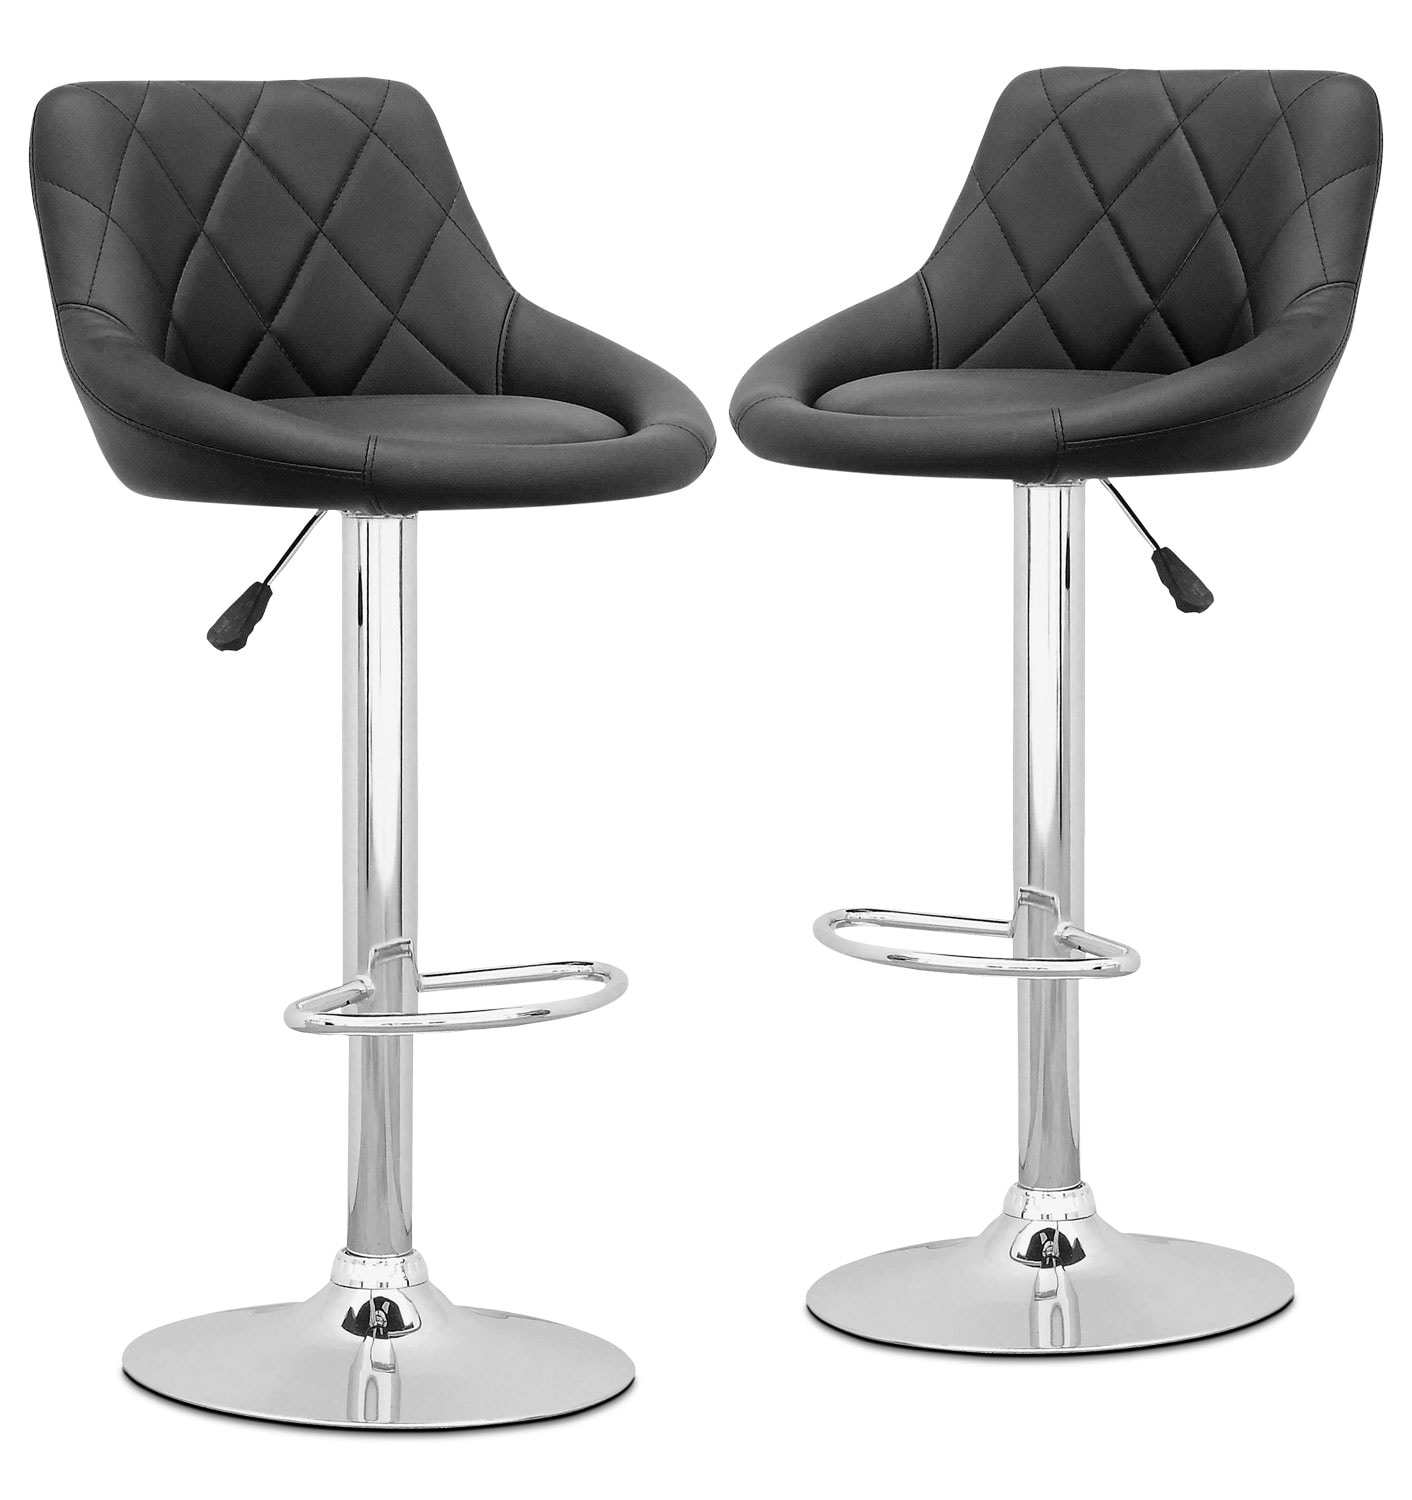 Adjustable Diamondback Bar Stool, Set Of 2 – Black